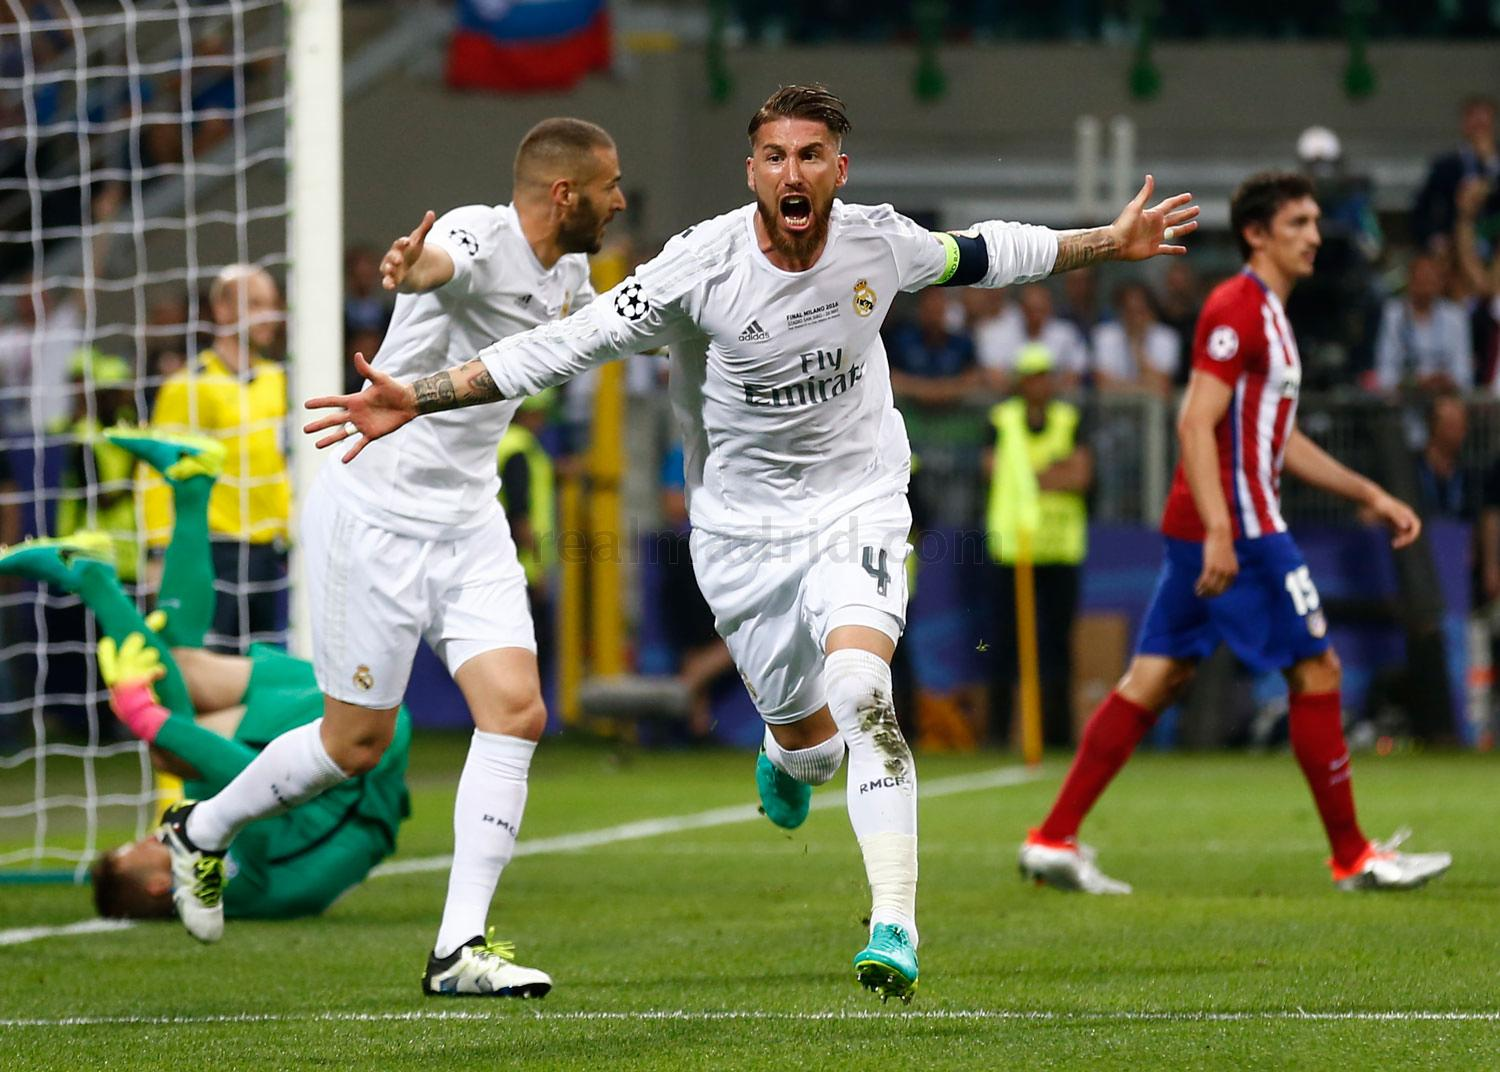 VIDEO: Real Madrid - Atletico de Madrid 1:1 (5:3)